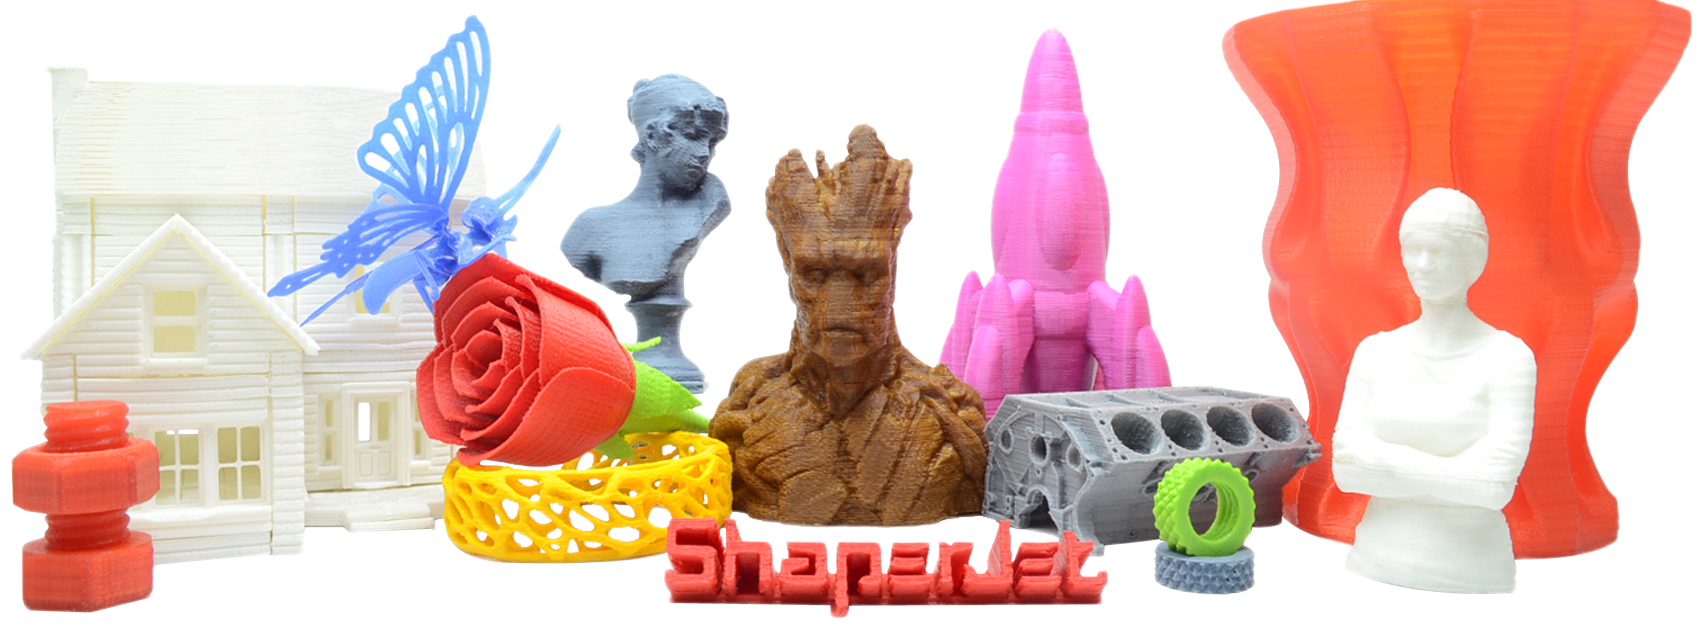 Shaperjet 3D Printer